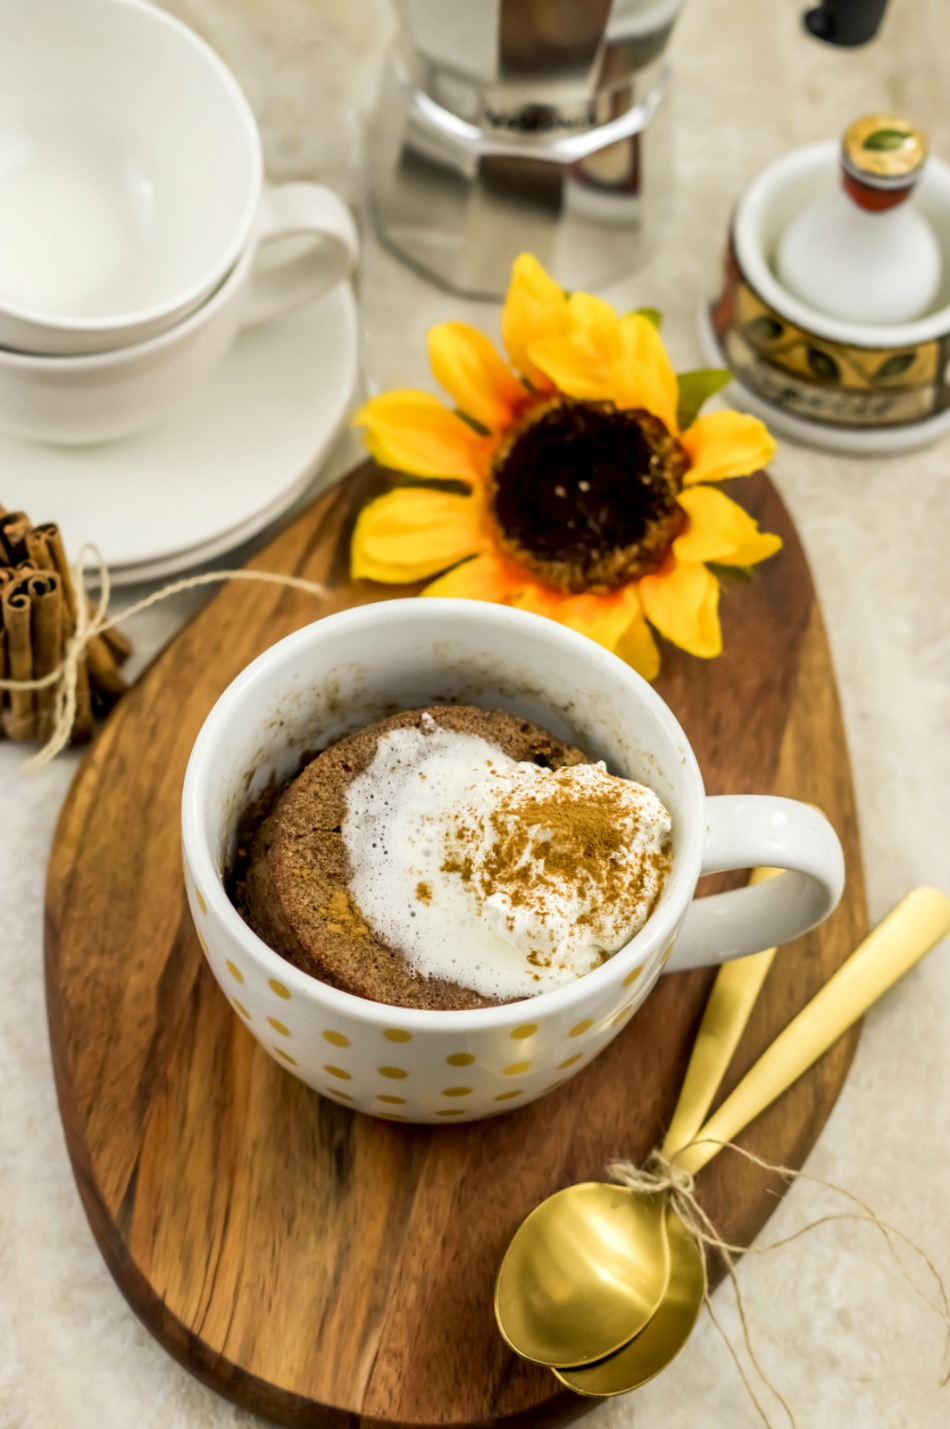 Healthy Mug Cake Recipe - Paleo Cinnamon Coffee Mug Cake